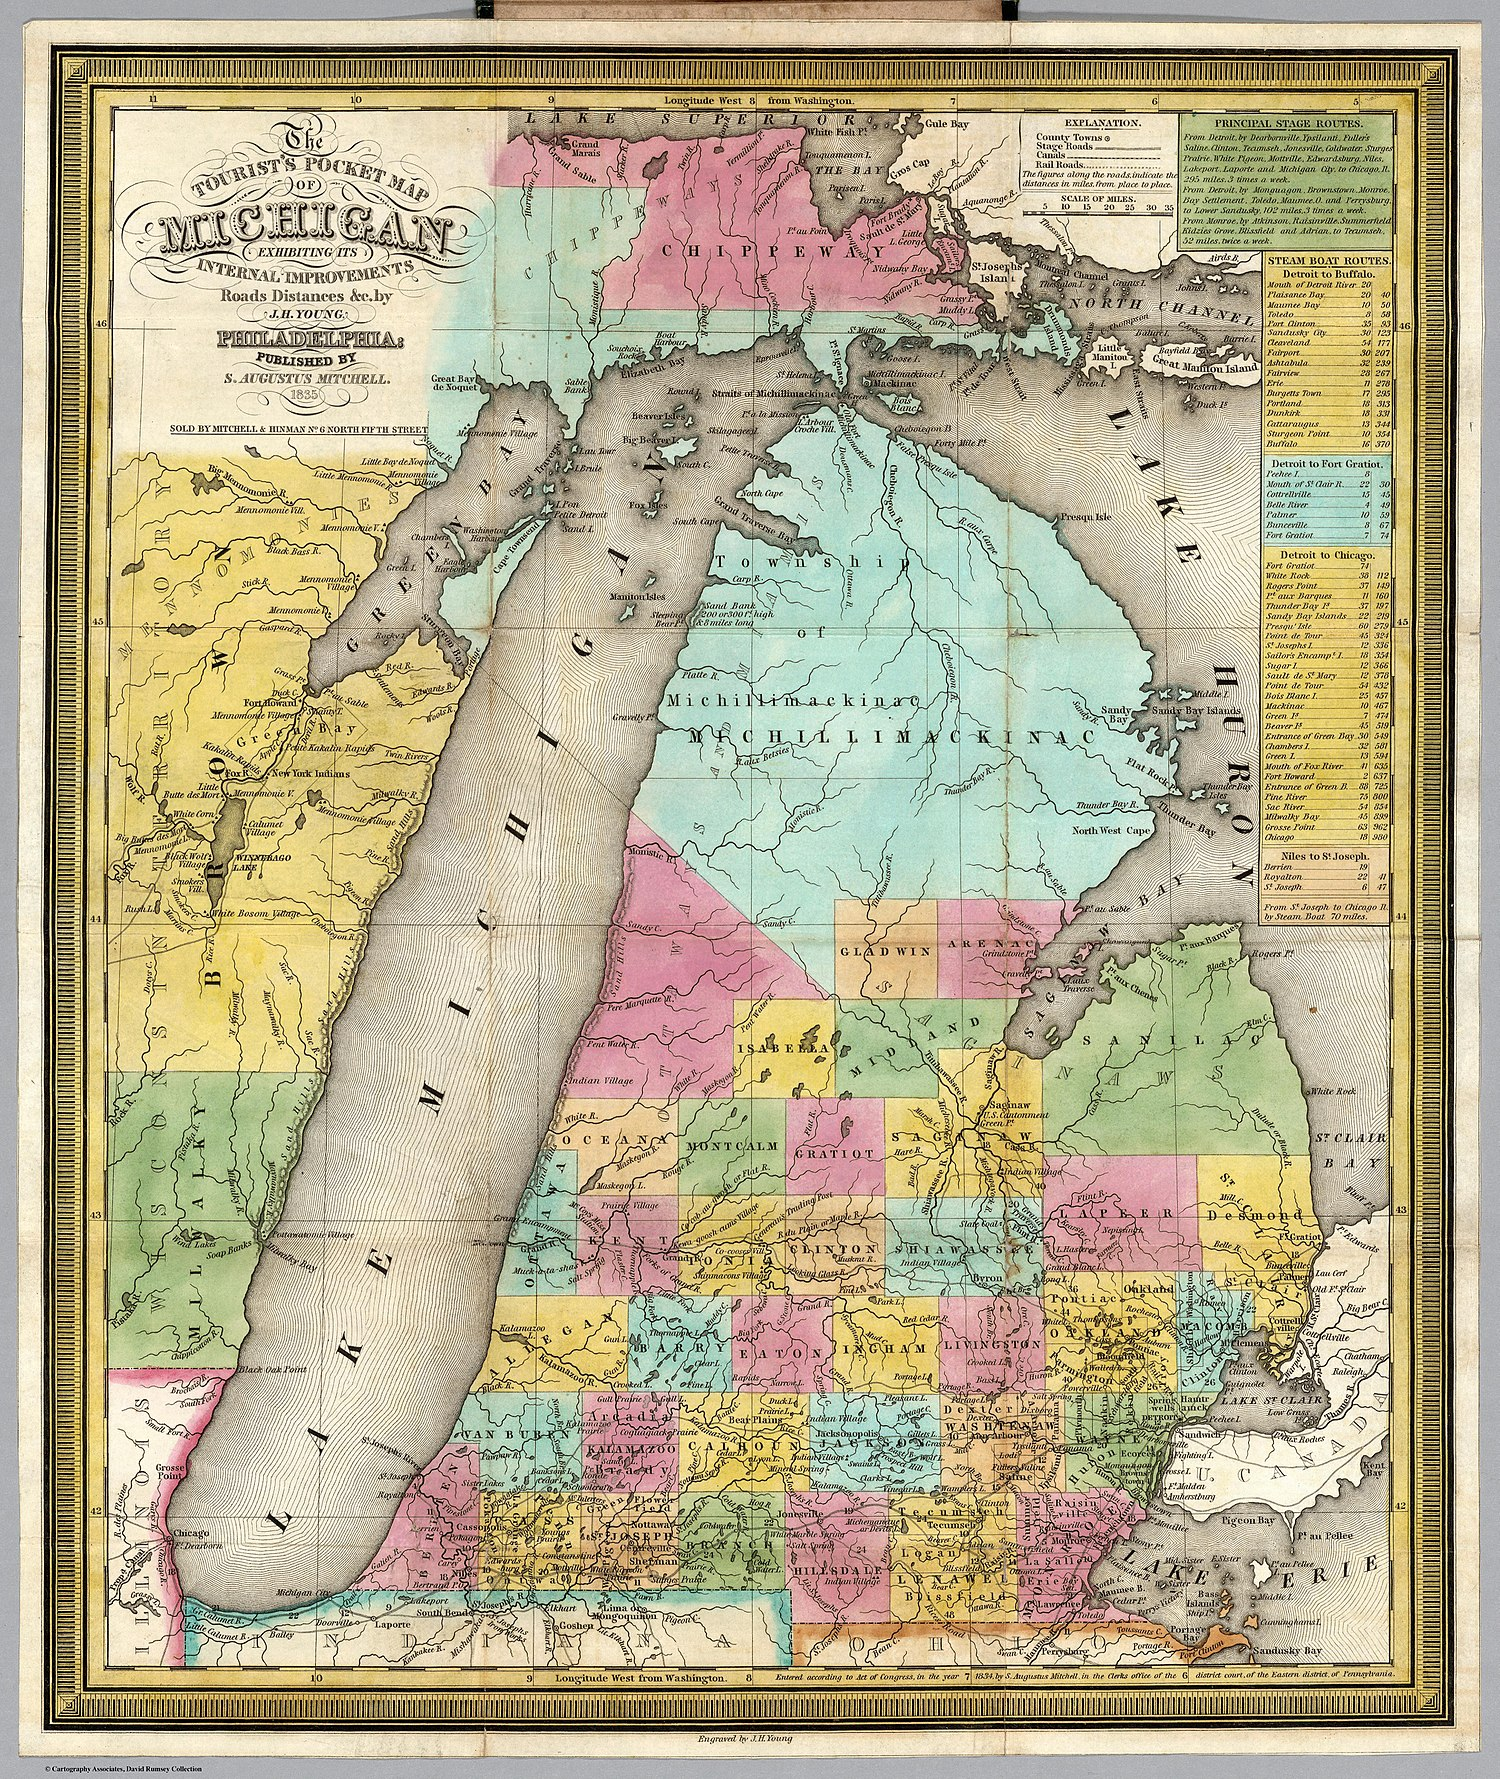 Wisconsin Territory depicted on this 1835 Tourist's Pocket Map Of Michigan, showing a Menominee-filled Brown County, Wisconsin that spans the northern half of the territory.